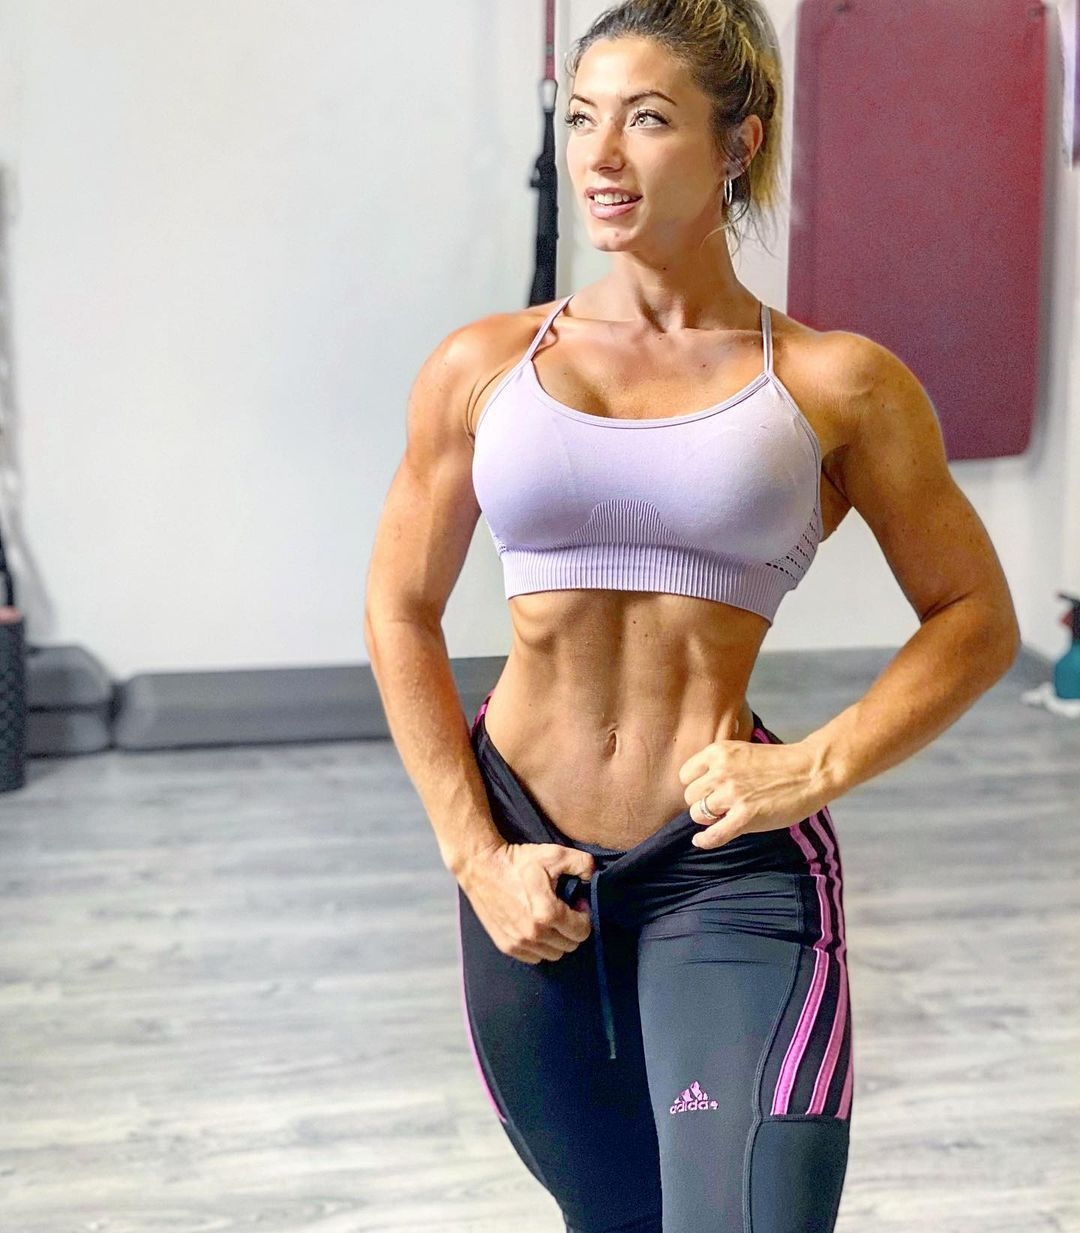 Crazy Fitness People Next Level Workout In 2020 Fitness Motivation Videos Workout Fitness